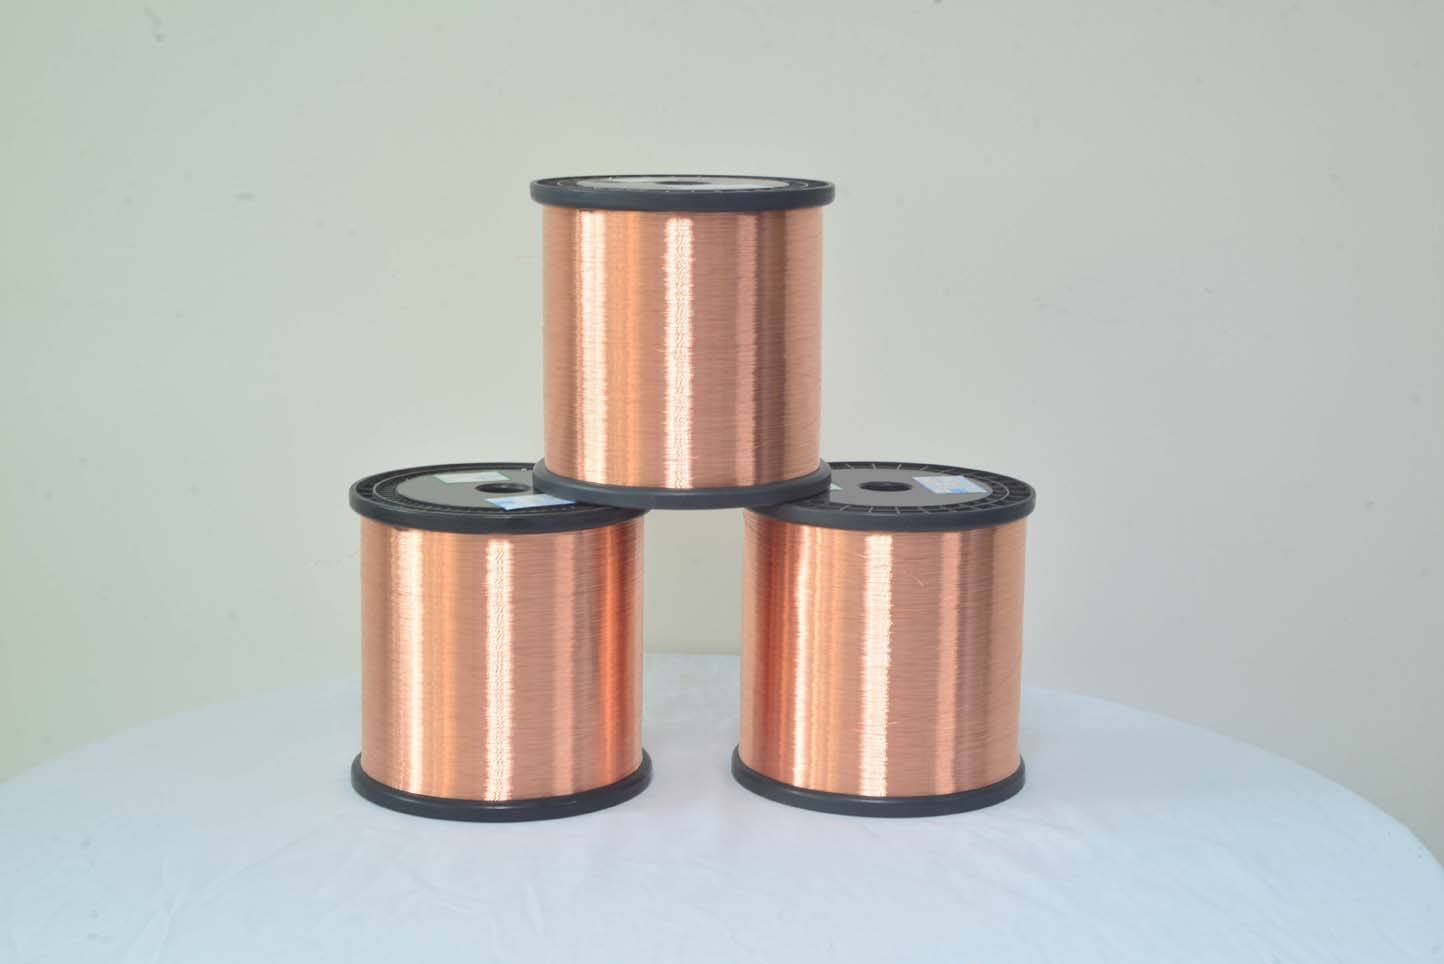 CCA(Copper Clad Aluminum) wire